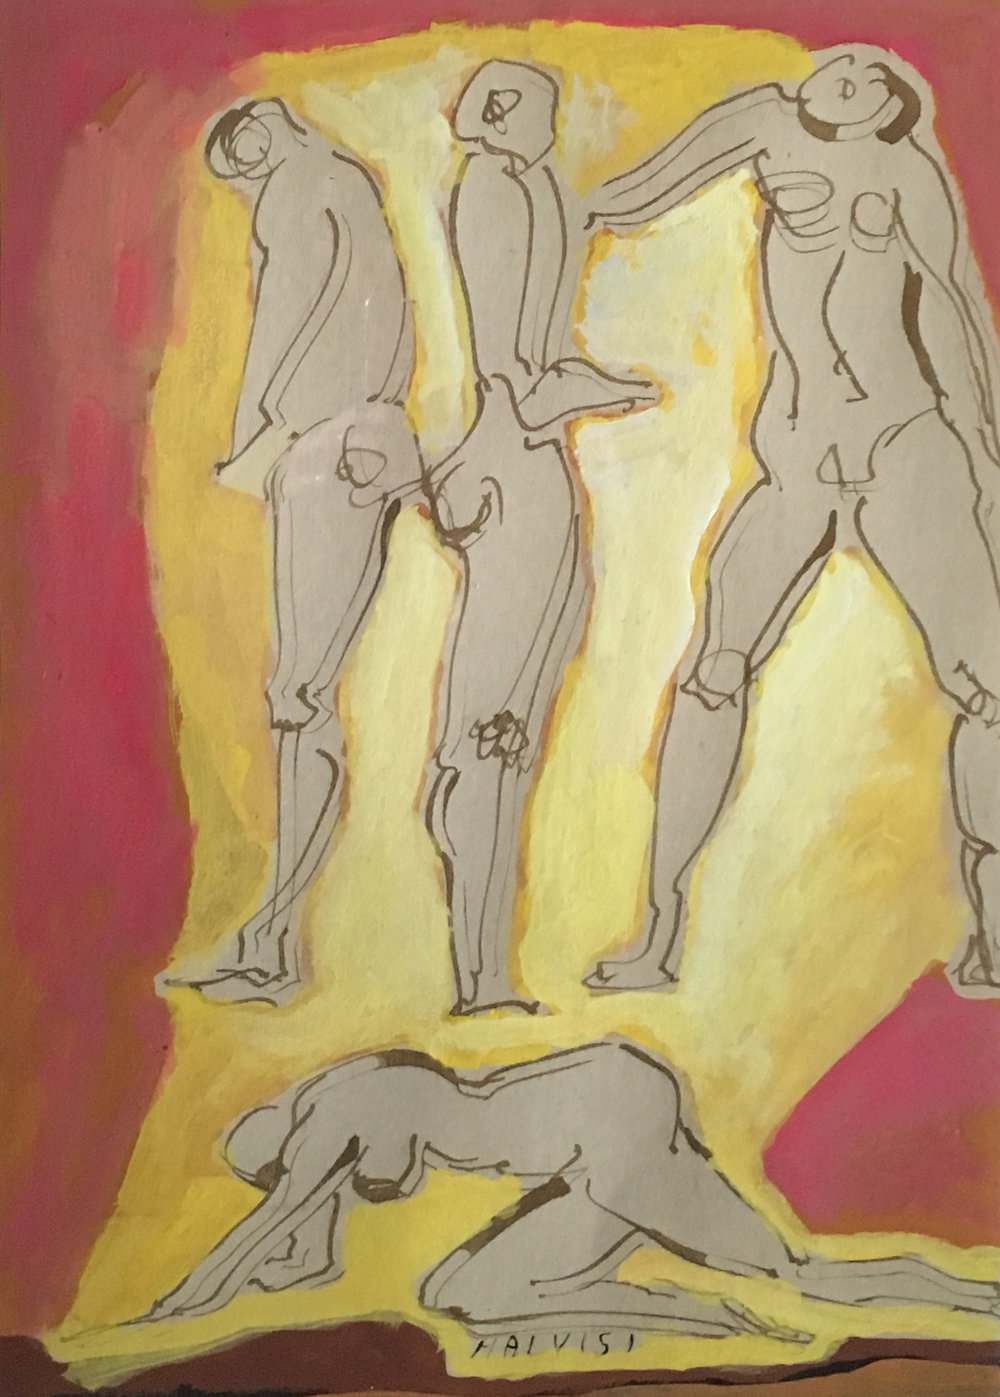 <b>Different orthodoxy</b><br> (Orig. Diversa ortodossia) <br> 1980 Ink and watercolor <br> cm 34 x 50